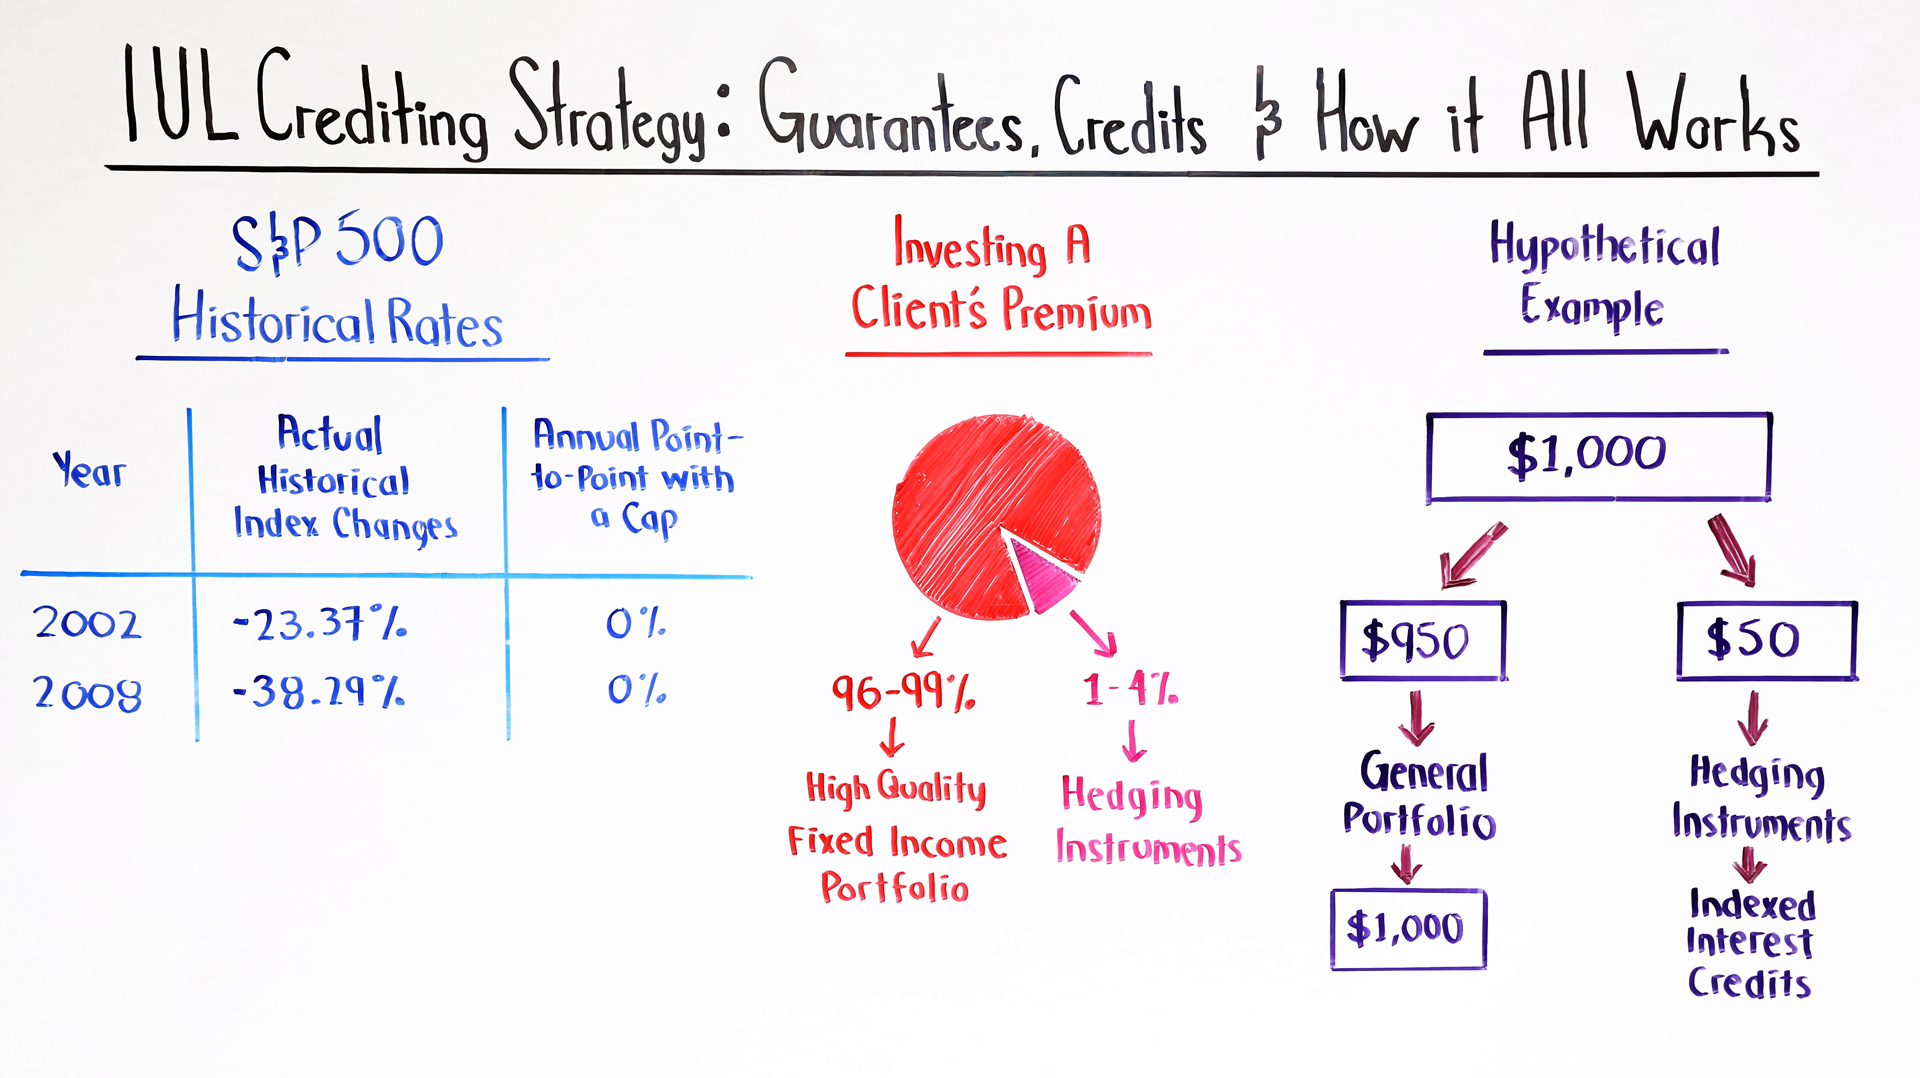 IUL Crediting Strategy Guarantees Credits and How it All Works